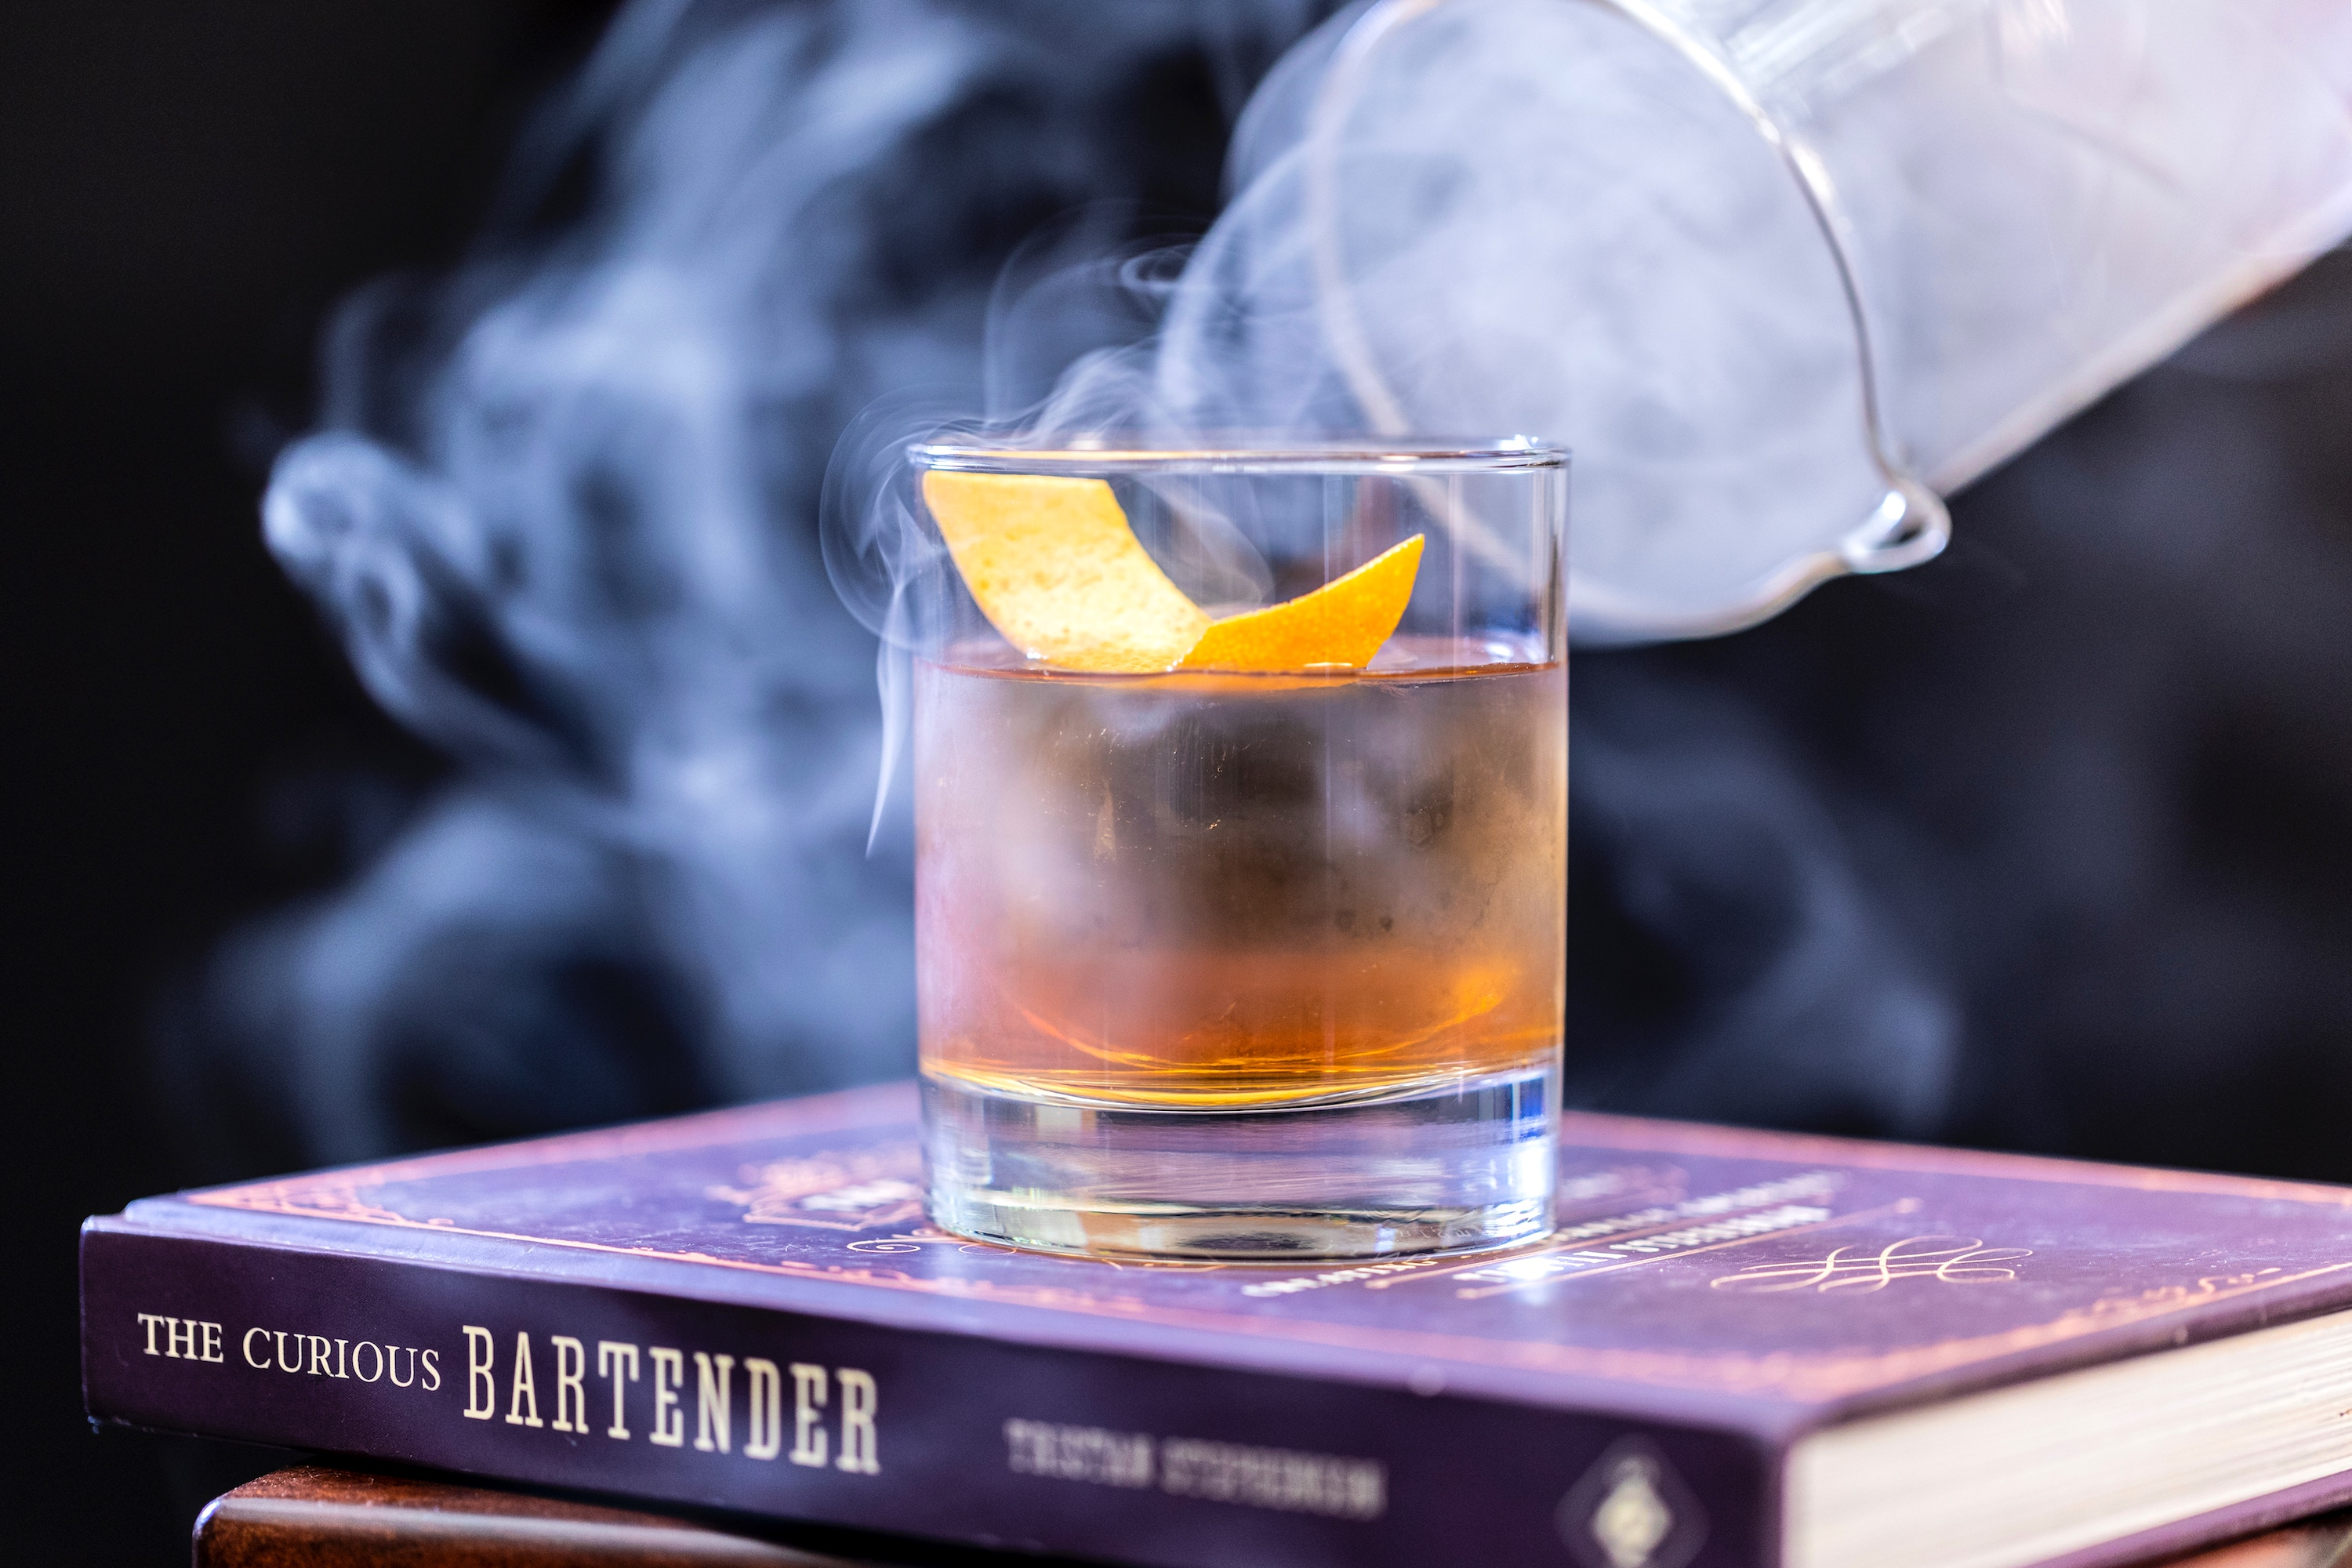 10 books every cocktail lover should own